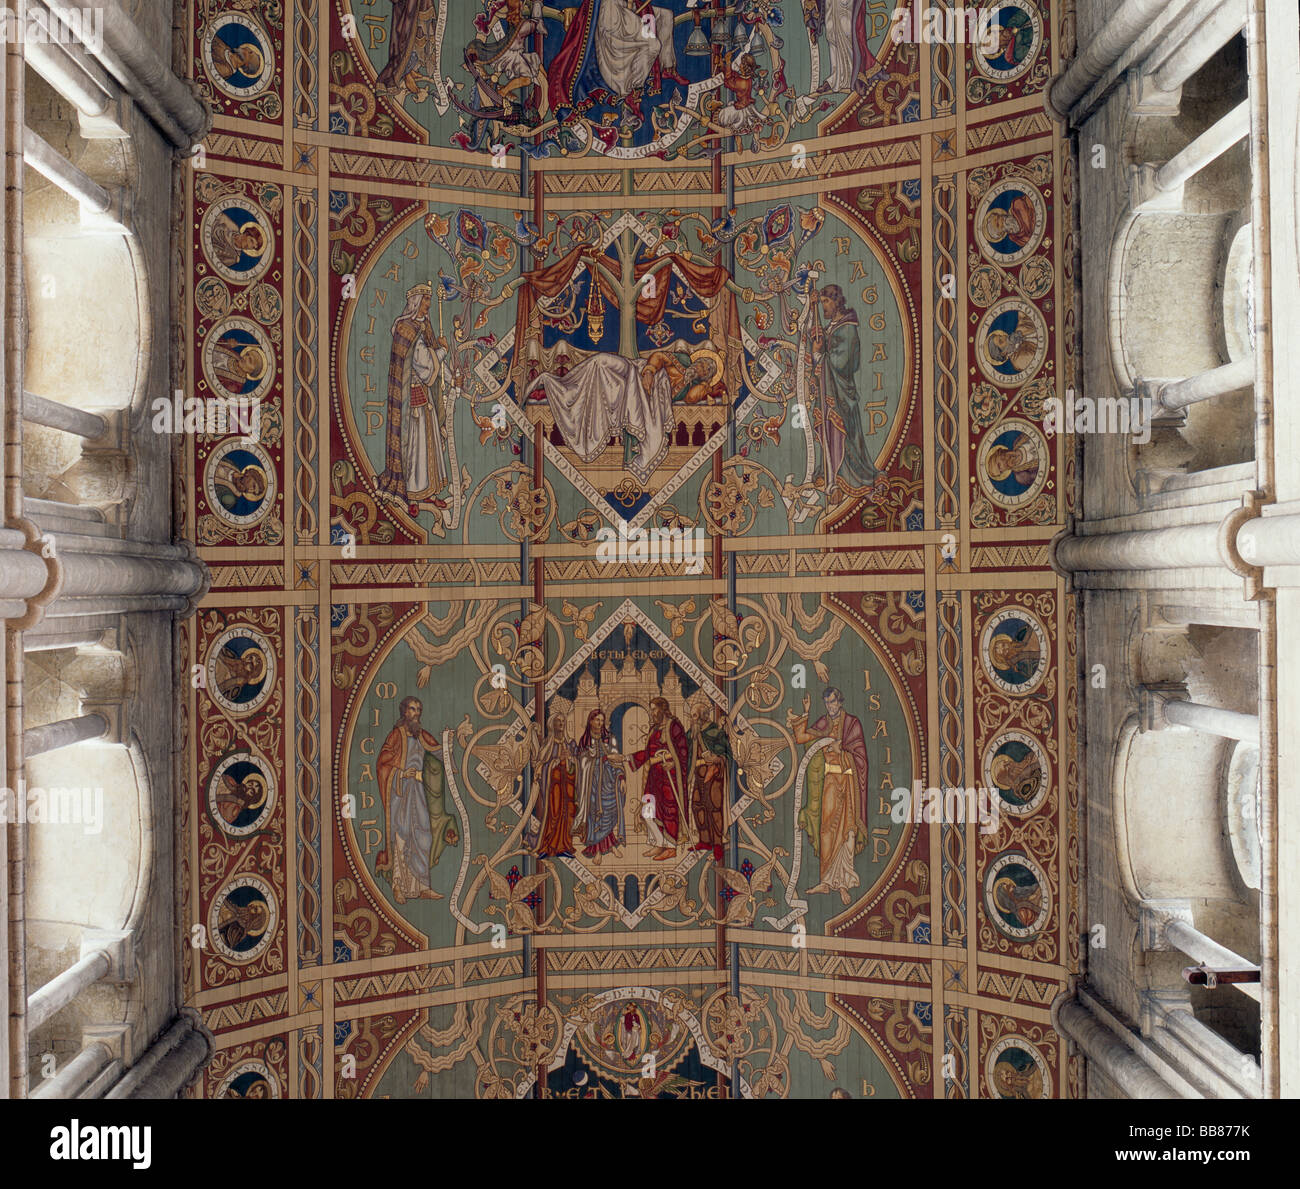 Ely Cathedral Nave Ceiling Panels - Stock Image